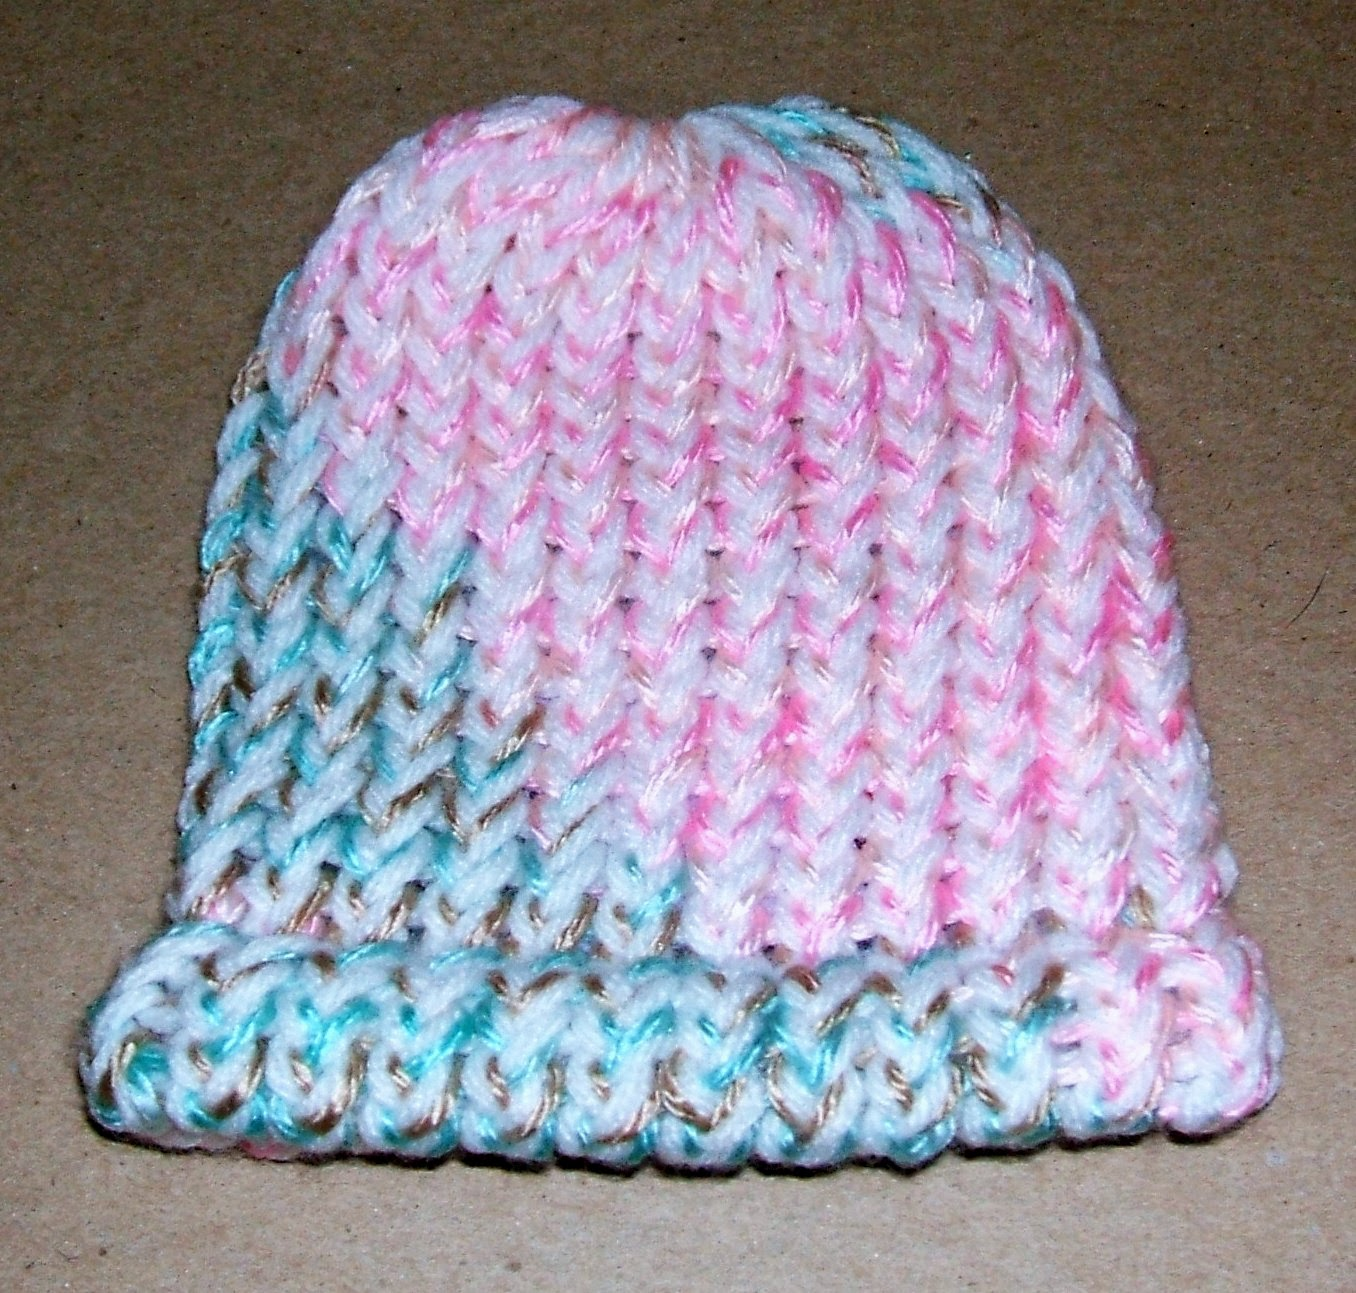 Loom Knit Baby Hat With Brim : Yolanda s creations crochet hats for everyone